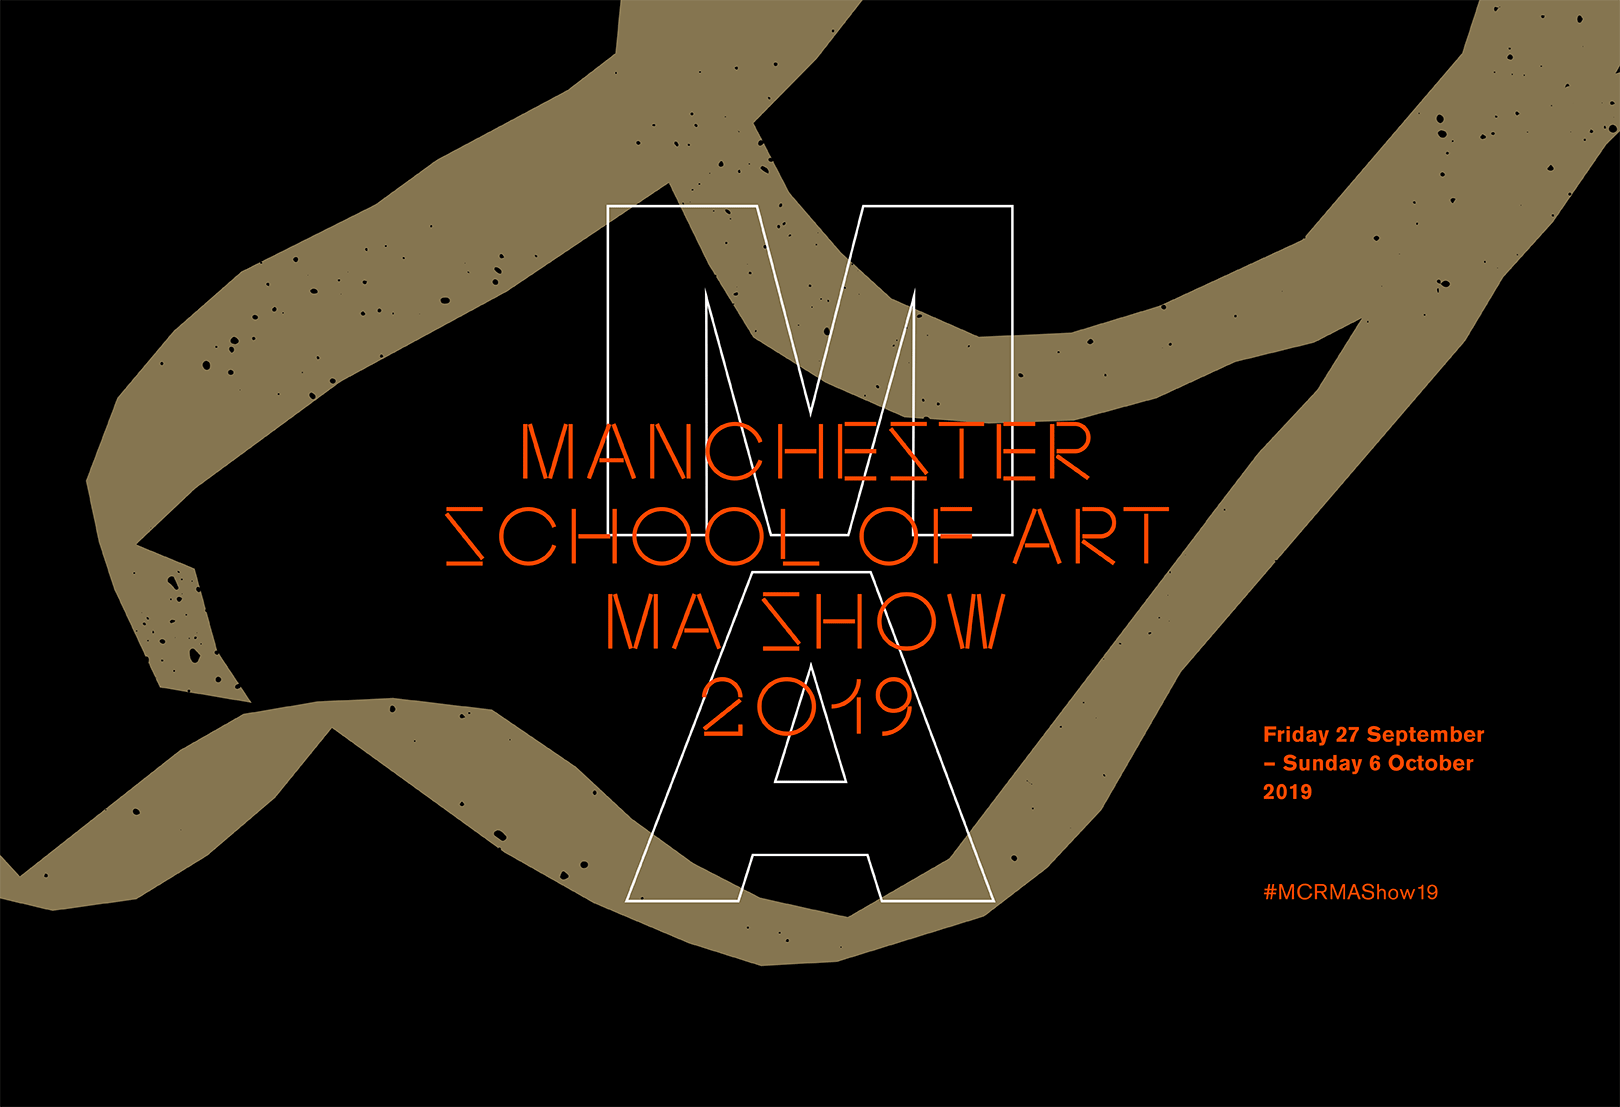 Manchester School of Art Degree Show 2019